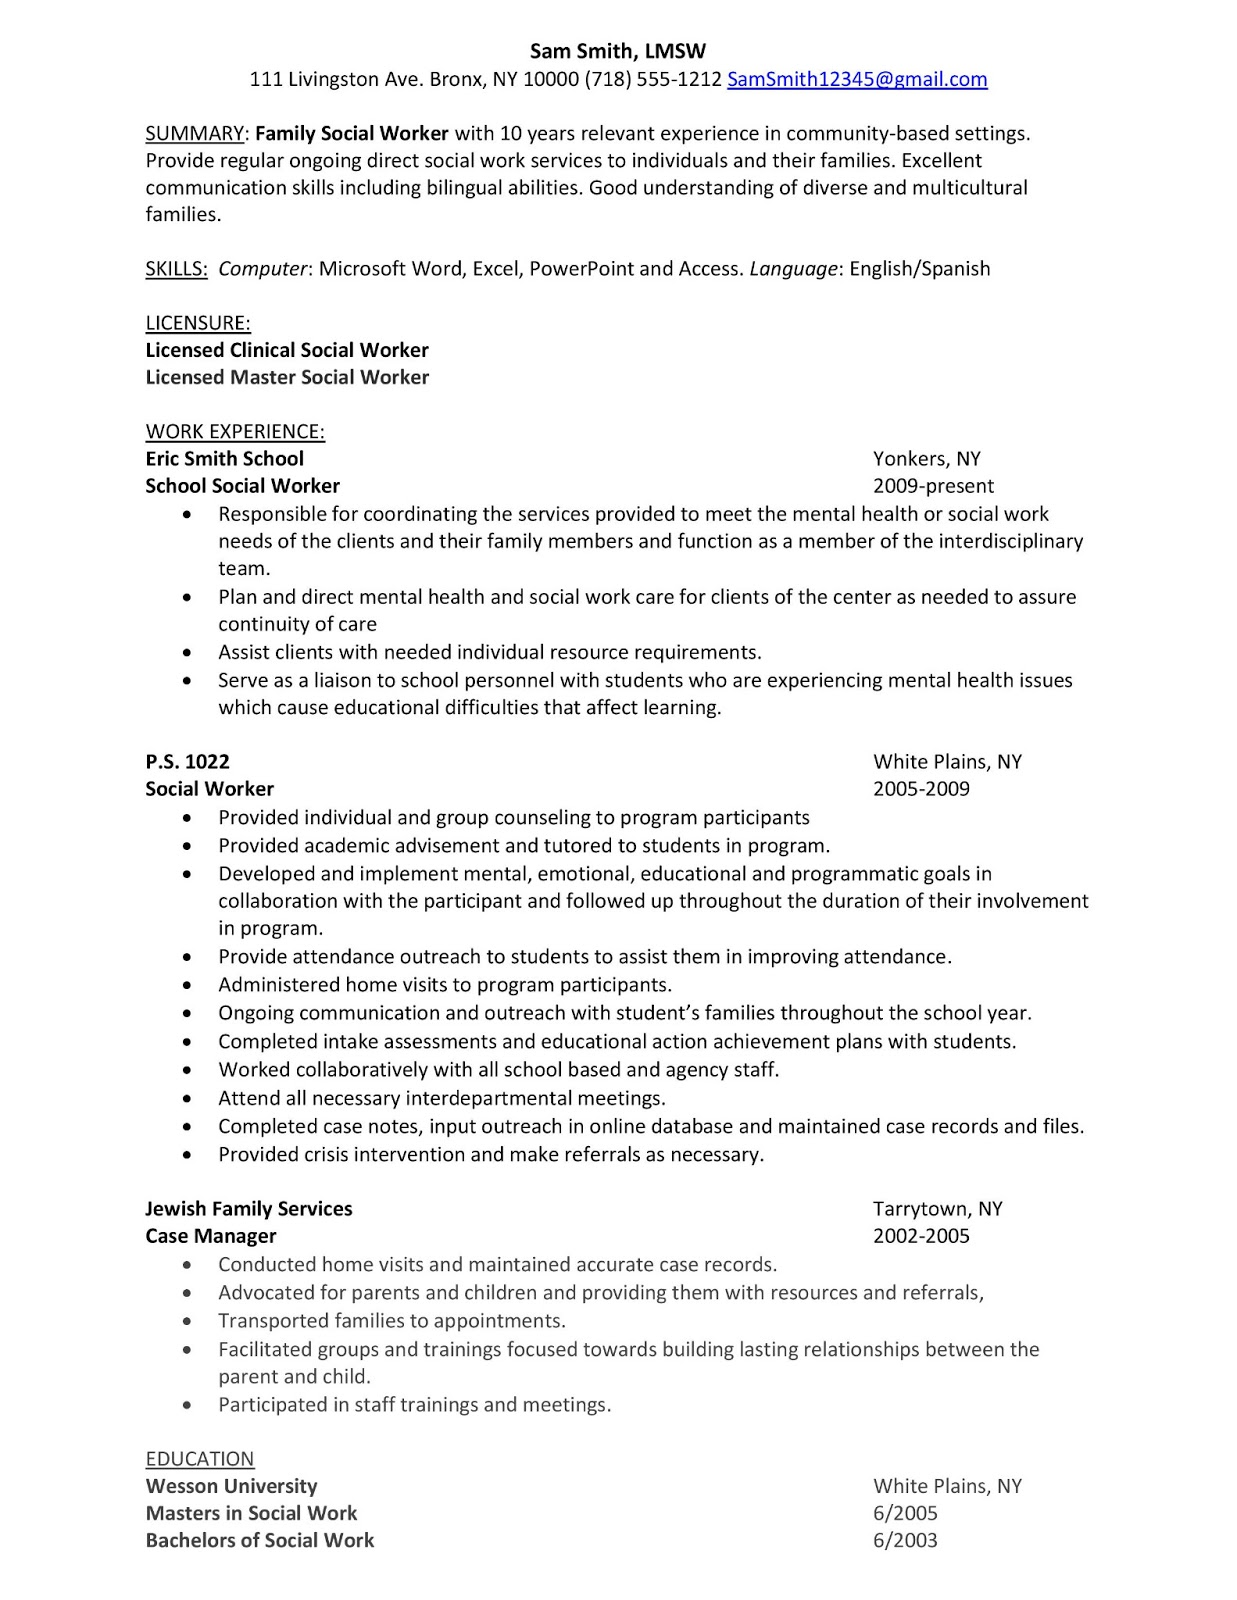 Sample Resume Family Social Worker Career Advice Pro Wrestling